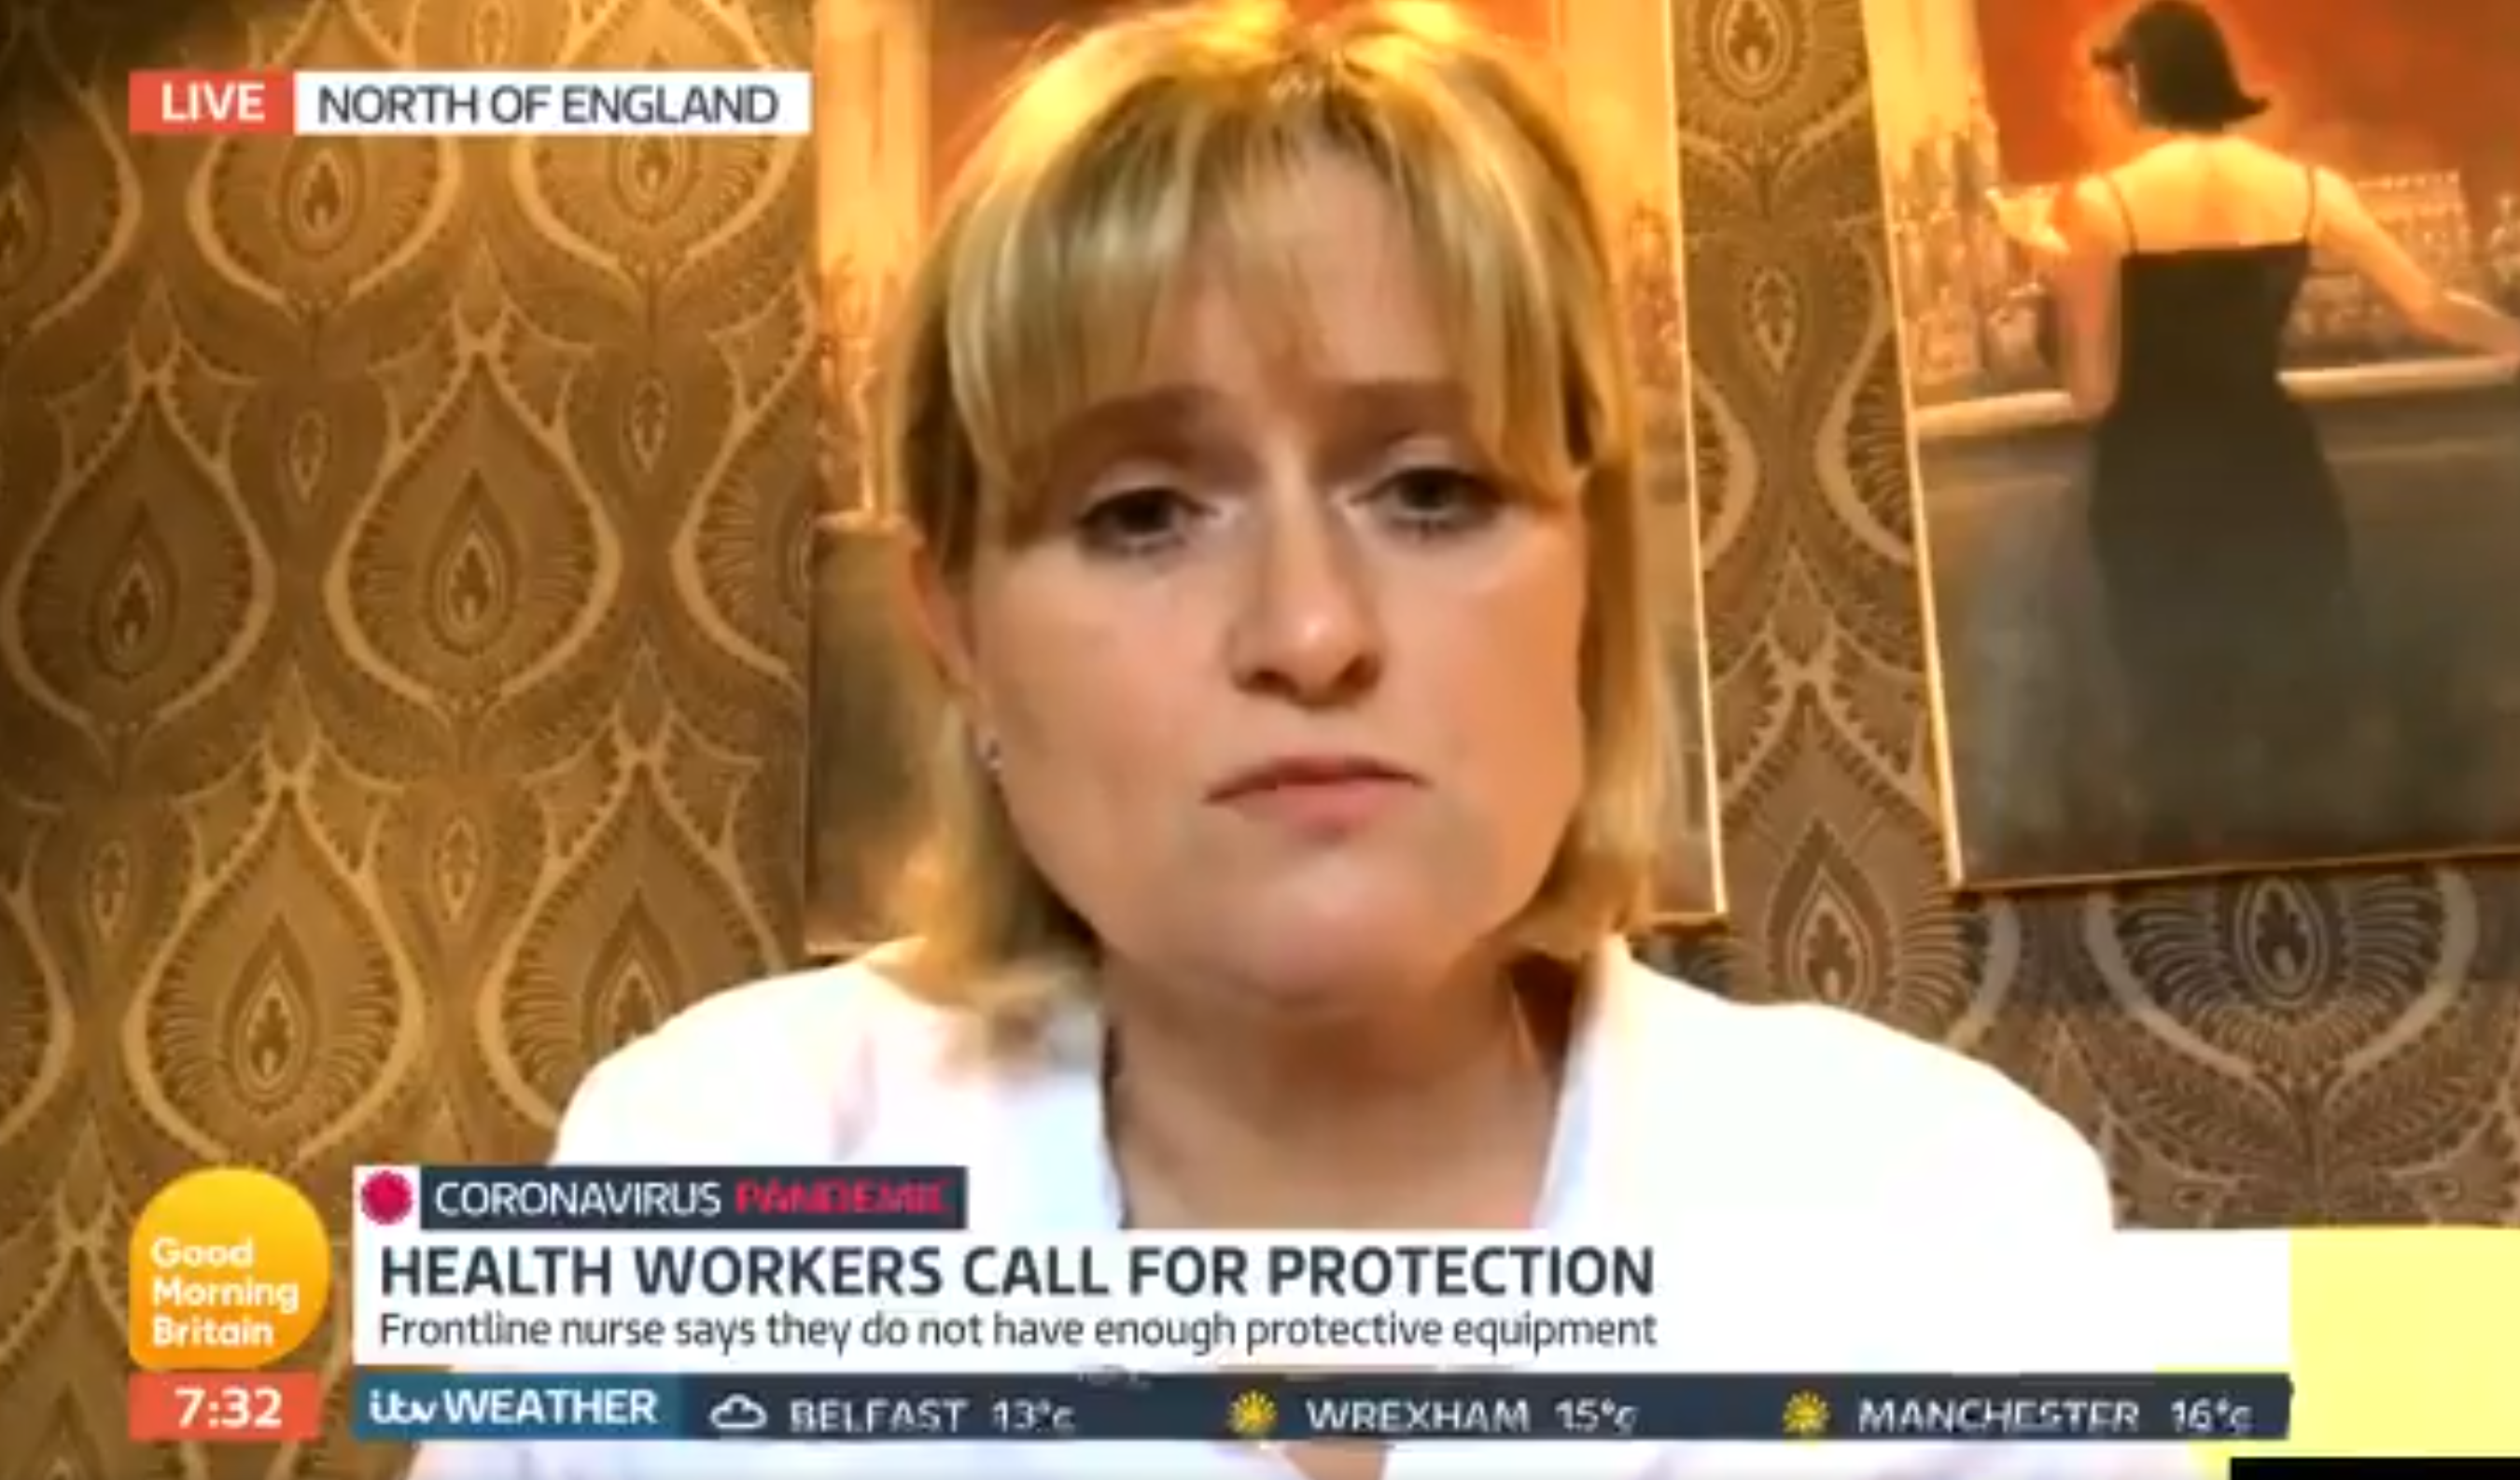 Coronavirus nurse says the government is TOO LATE on Good Morning Britain